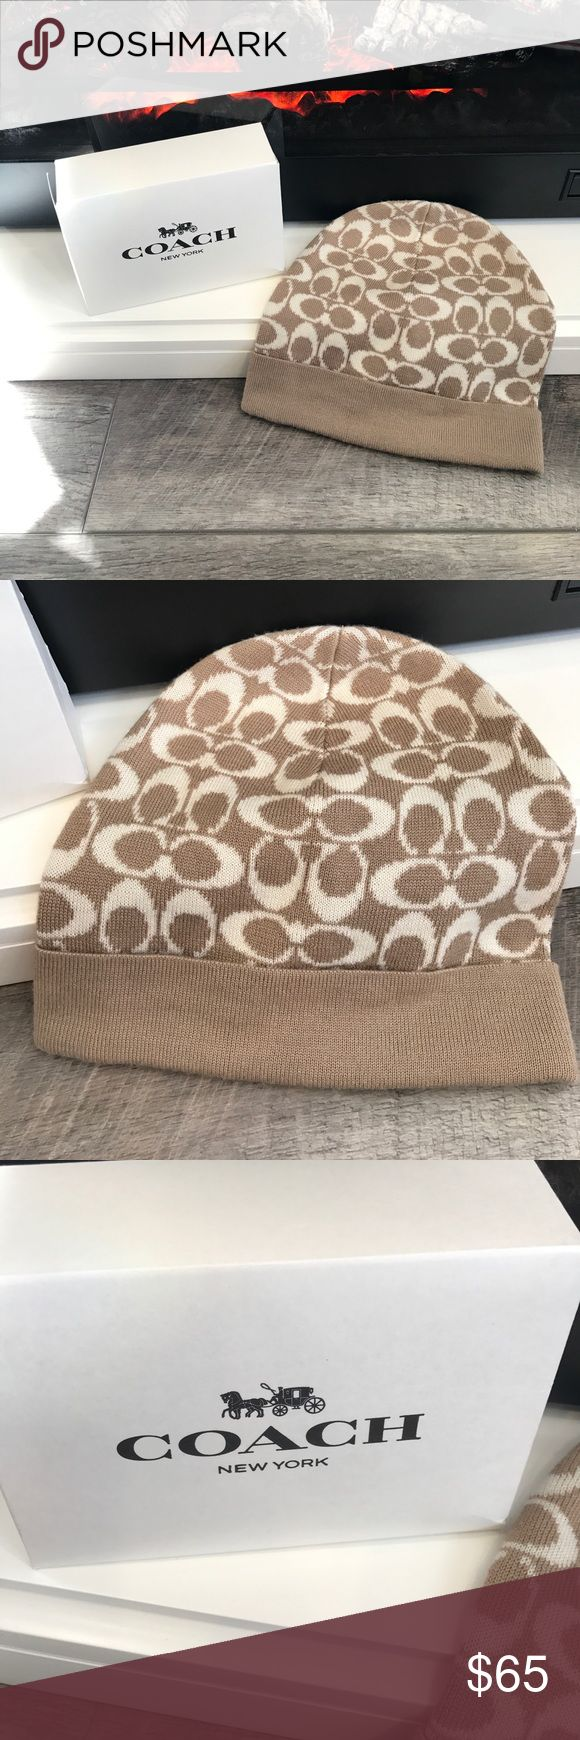 ‼️NWOT Coach Hat‼️ NWOT Coach Hat! Includes Box! OS! Wool And Acrylic! Super Cute! ‼️OPEN TO OFFERS‼️ Coach Accessories Hats